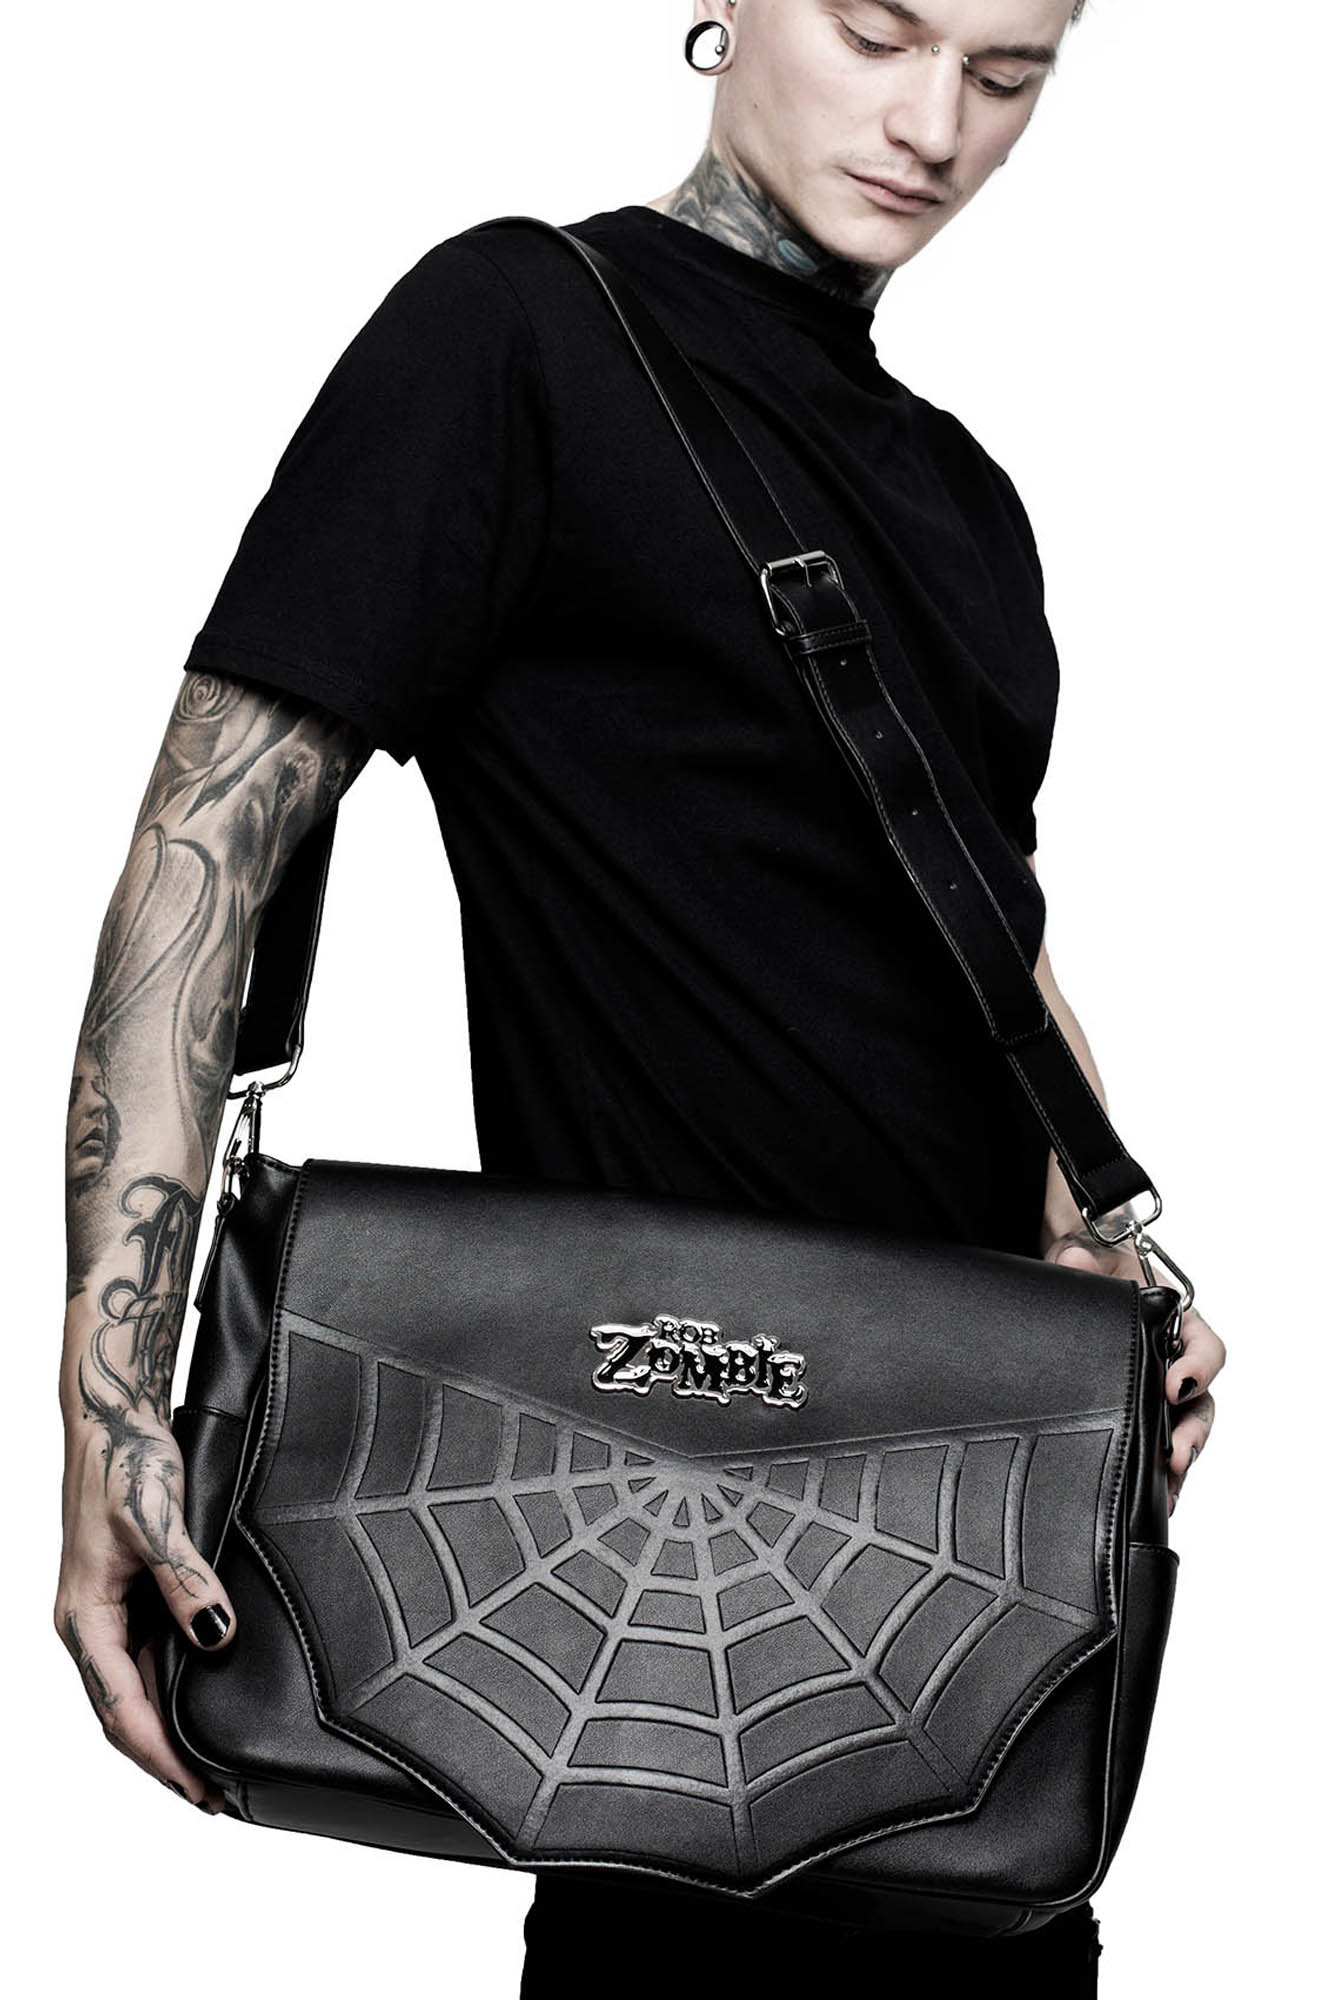 2bb6501966a9 Monster Deluxe Messenger Bag. Double tap to zoom